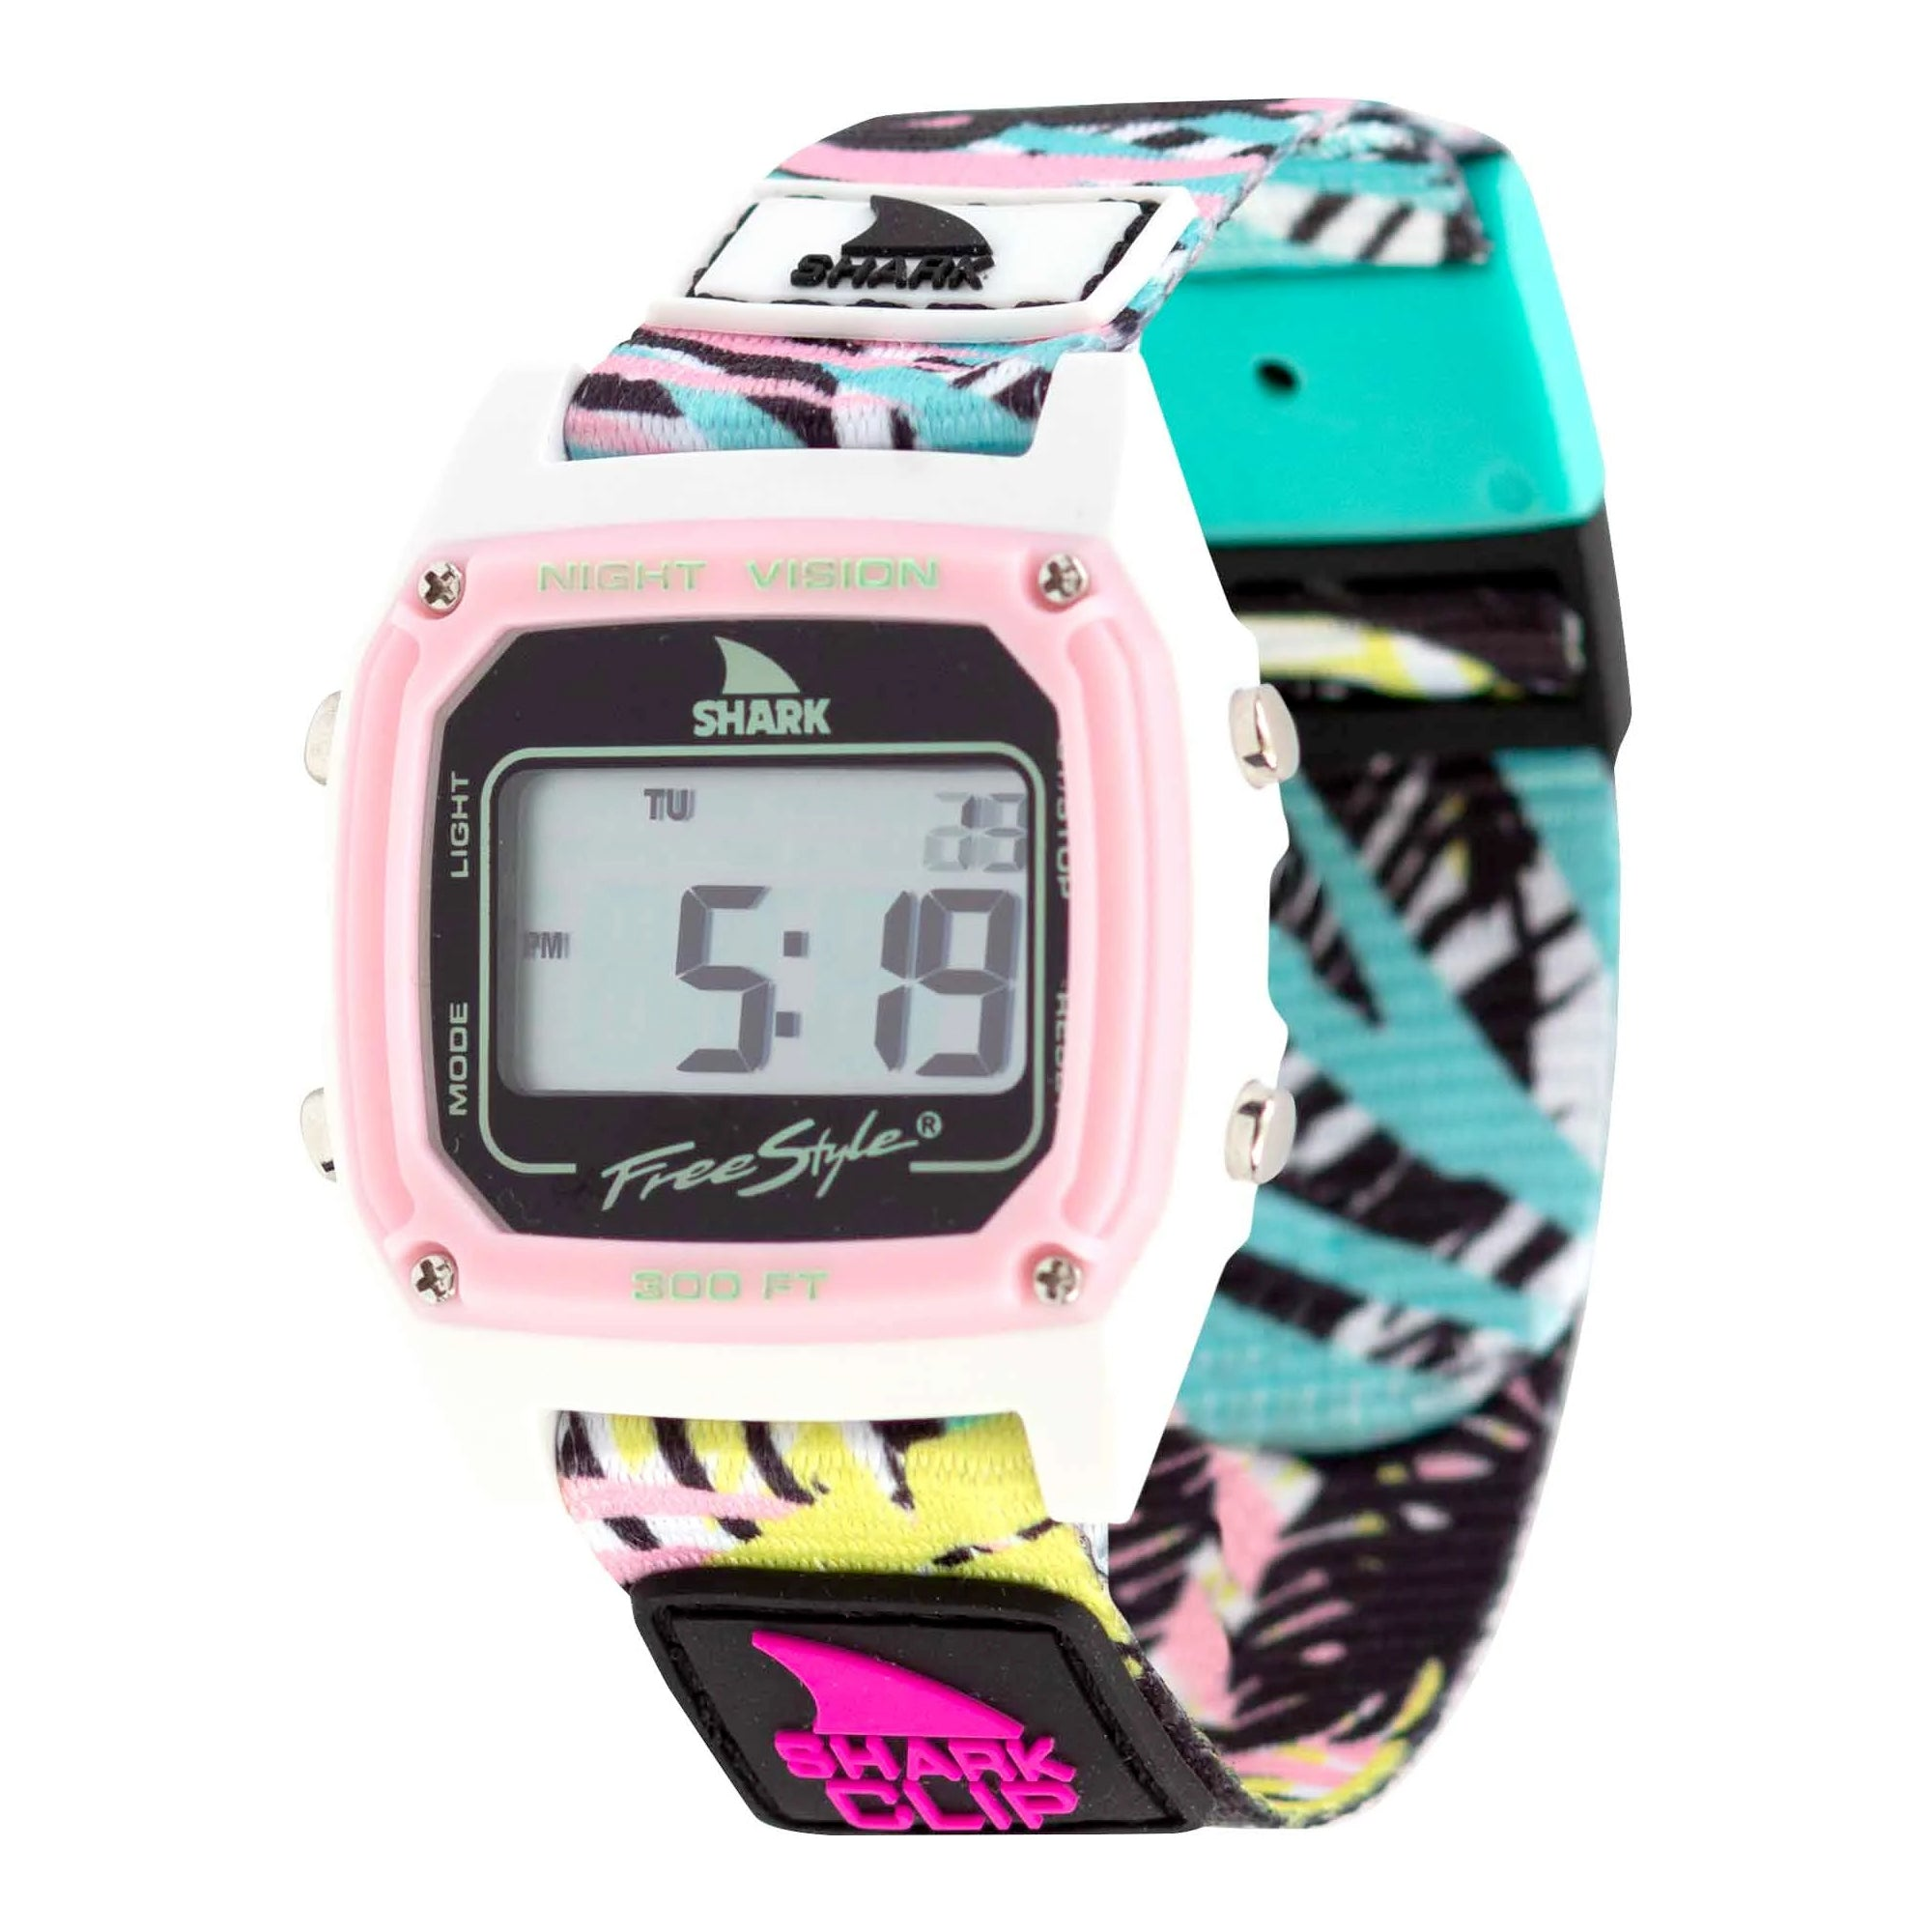 Freestyle Shark Classic Clip Women's Watch - Pink Palm